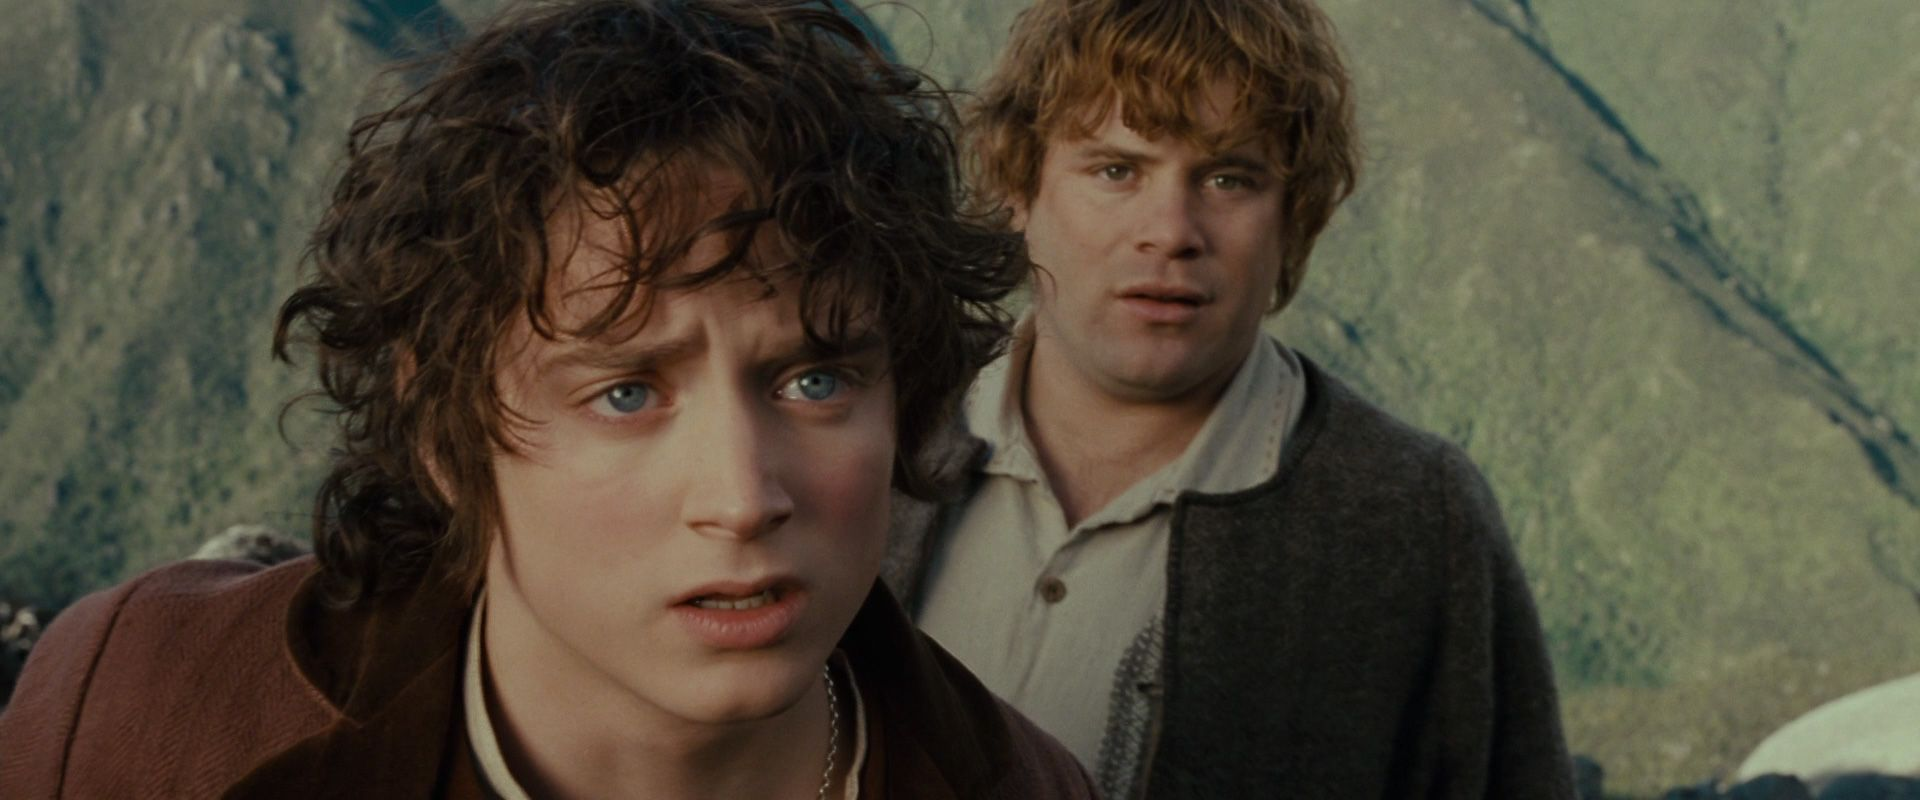 pokes at when baggins pin frodo elves rings love i there the fun